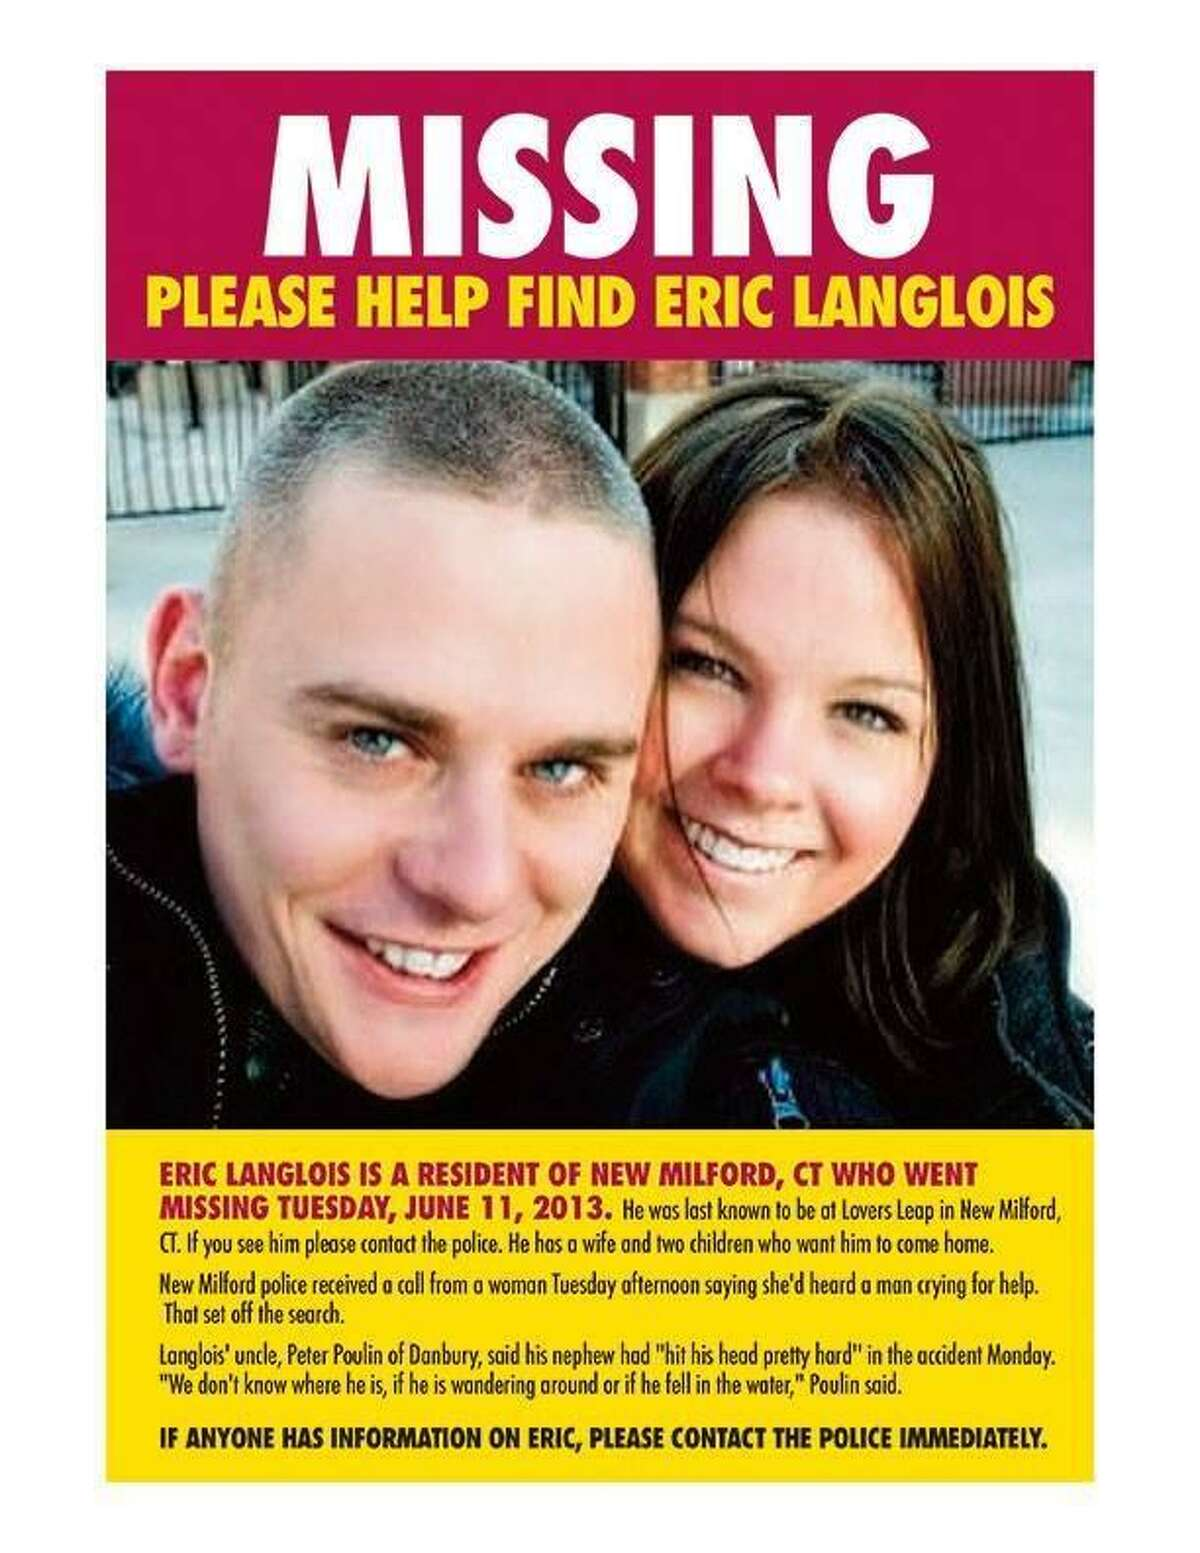 A missing person poster showing Eric Langlois, who disappeared at Lake Lillinonah, and his wife, Amber, distributed by friends on social media.